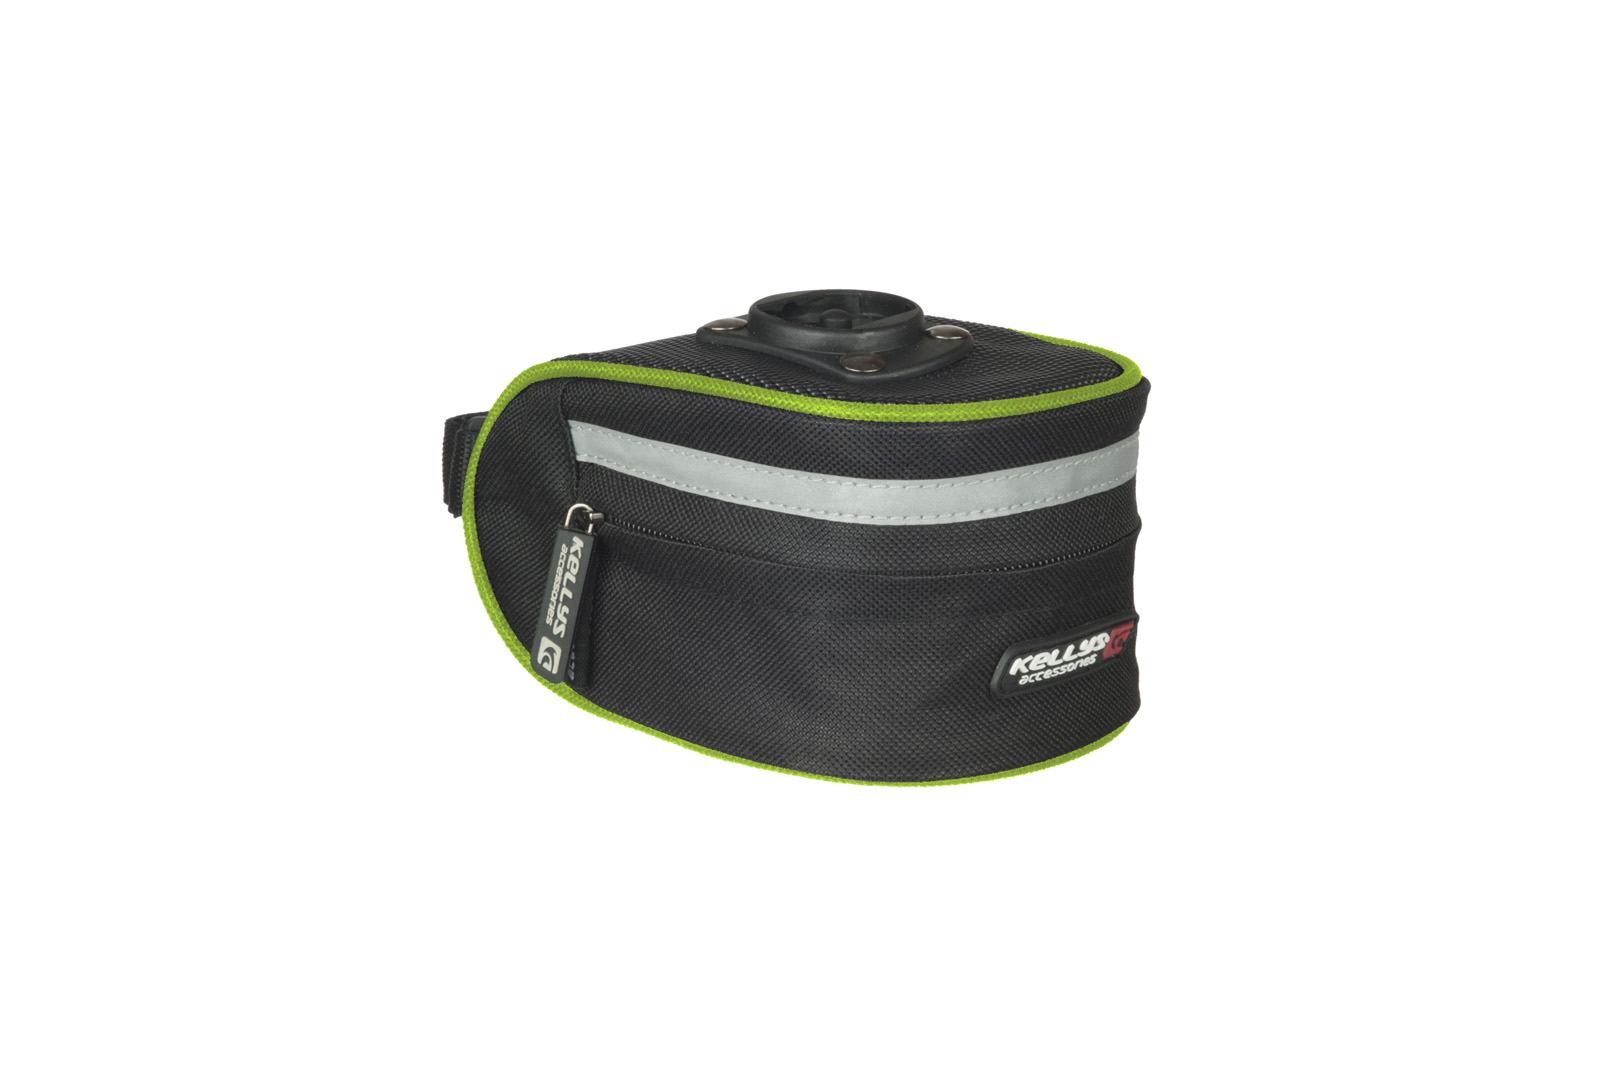 Satteltasche KELLYS HANDY black-lime green M - Mile-Multisport